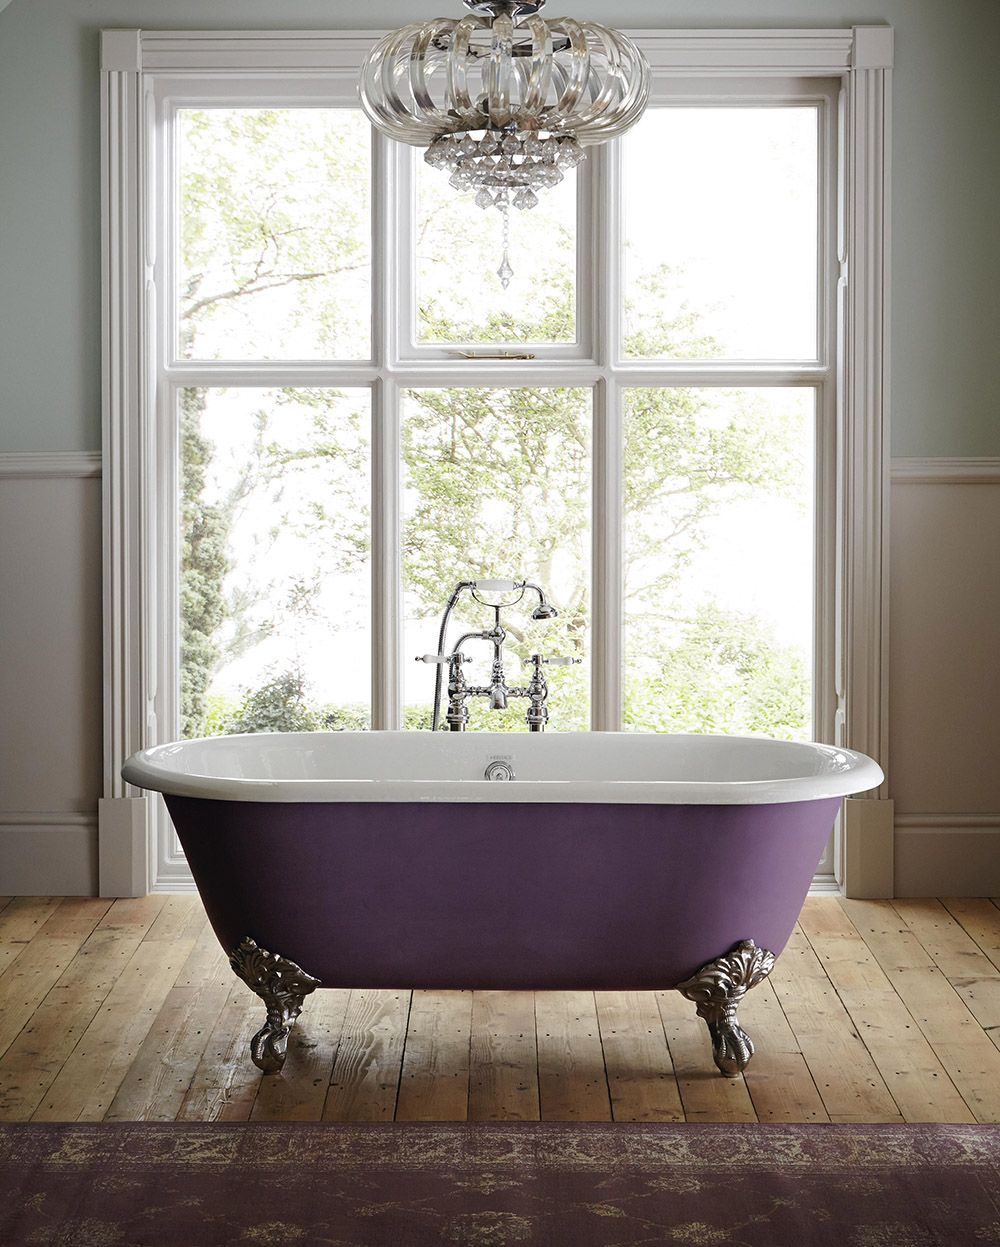 Cast iron baths give such a luxurious feel to a bathroom. Our luxury ...